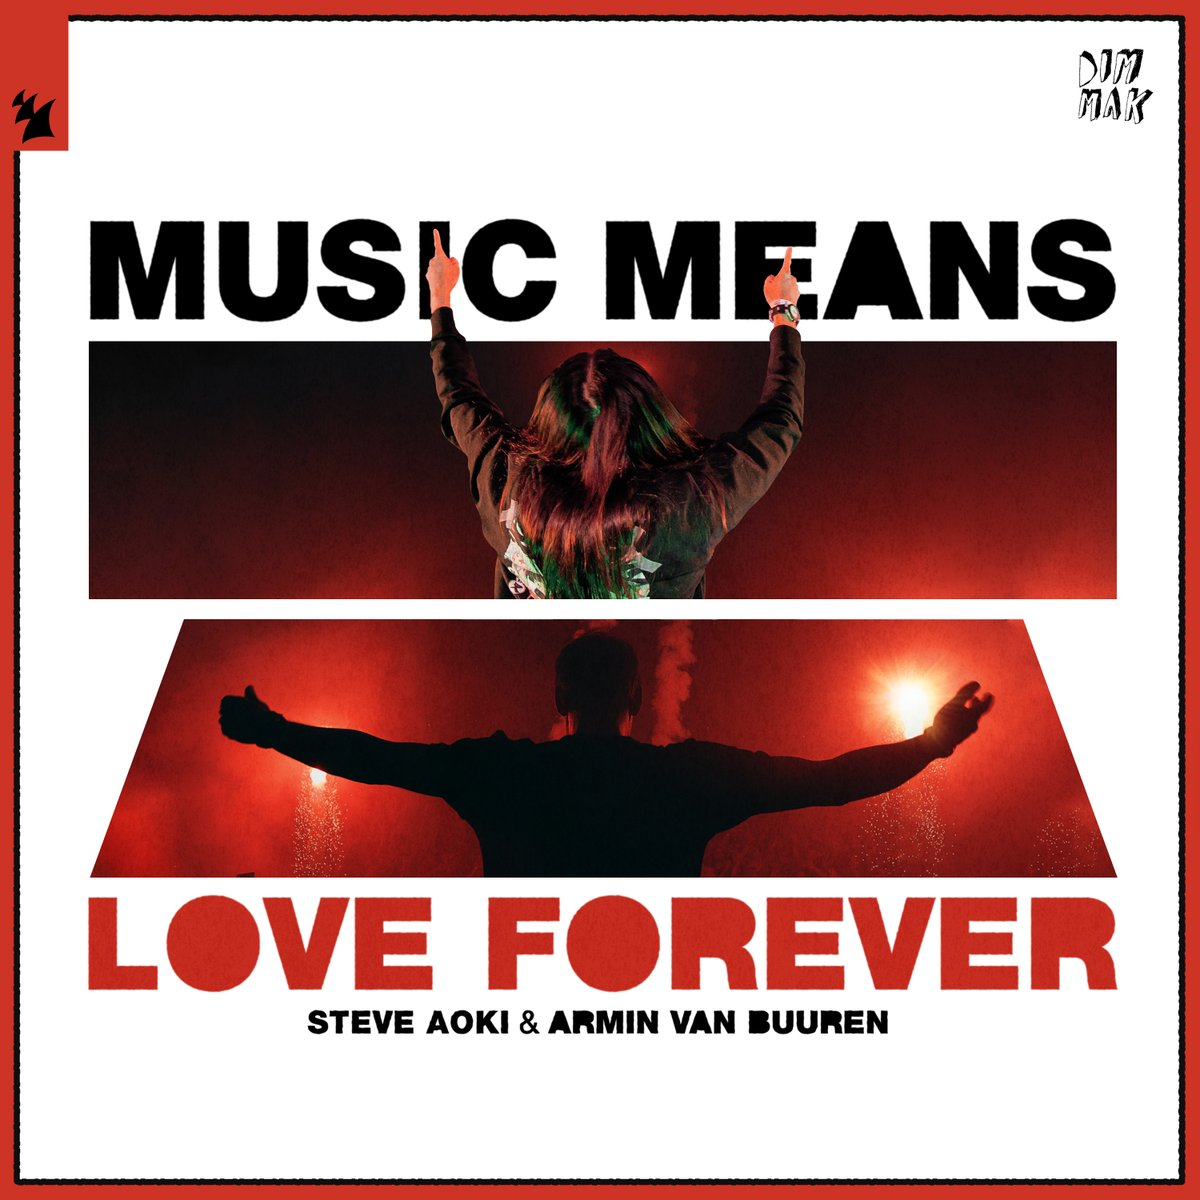 MUSIC MEANS LOVE FOREVER! New collab w/ @ArminVanBuuren coming this Friday!!! #MusicMeansLoveForever  🎵❤♾.y.at